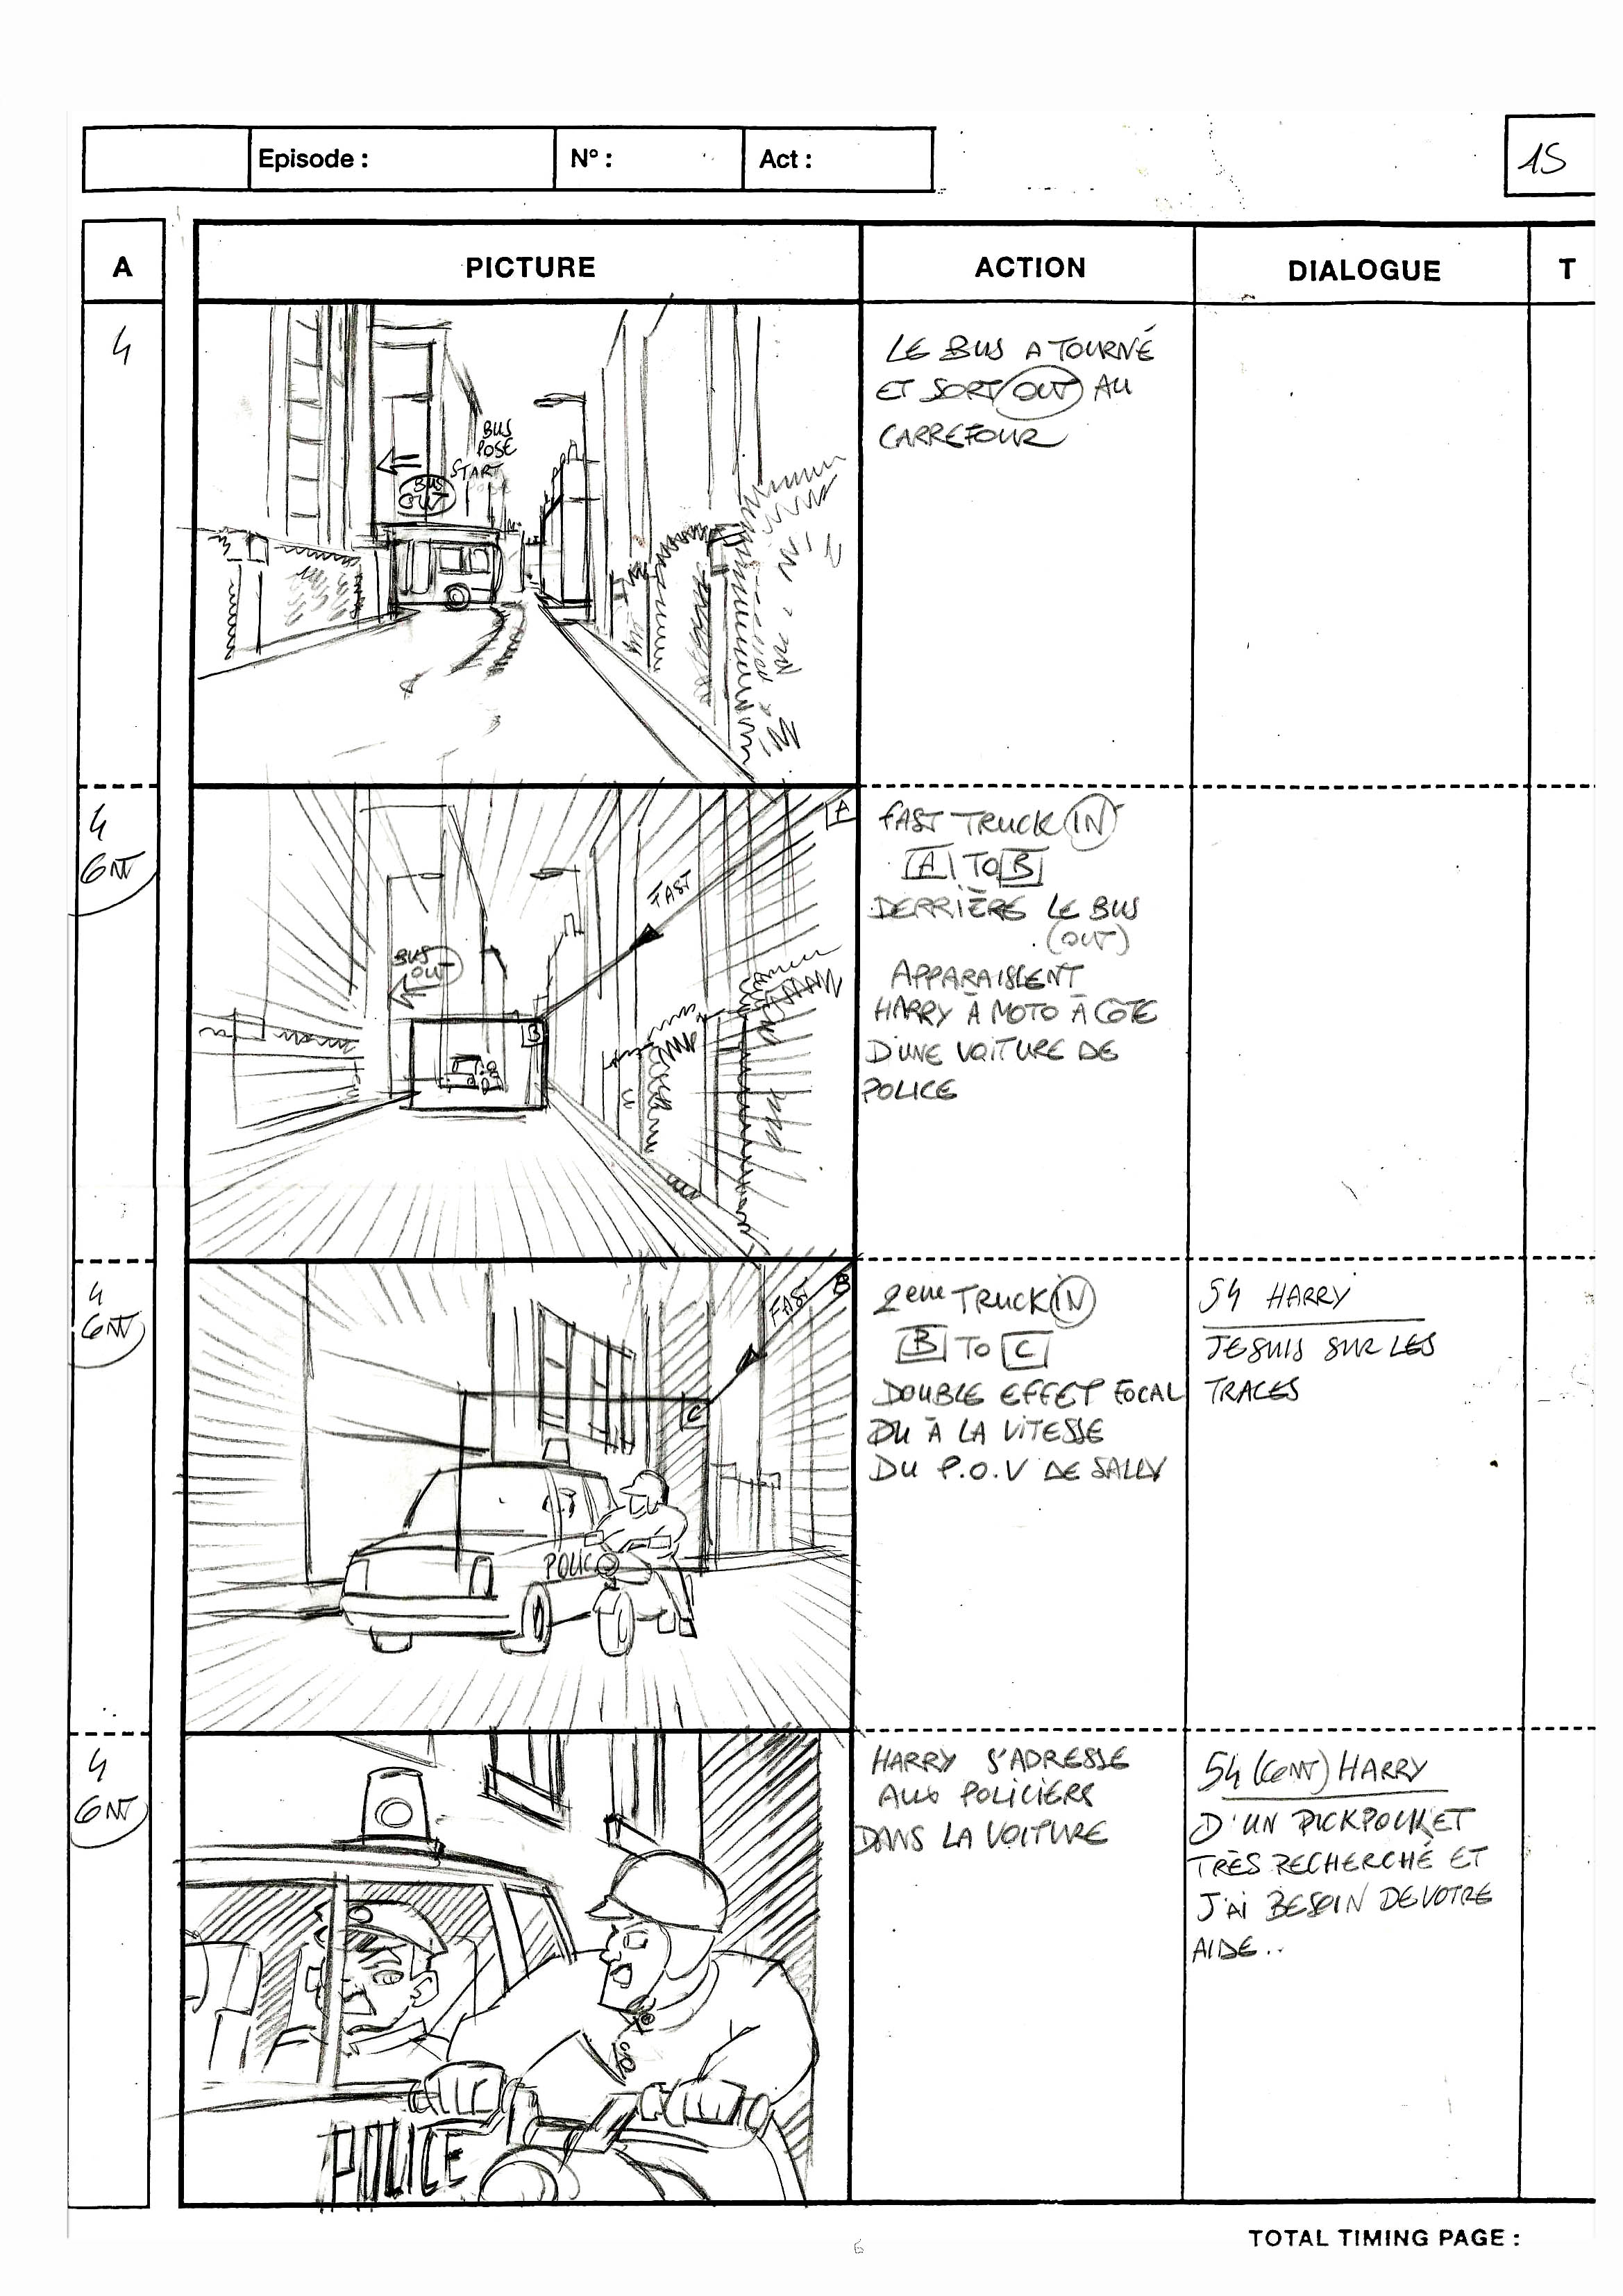 tests storyboards